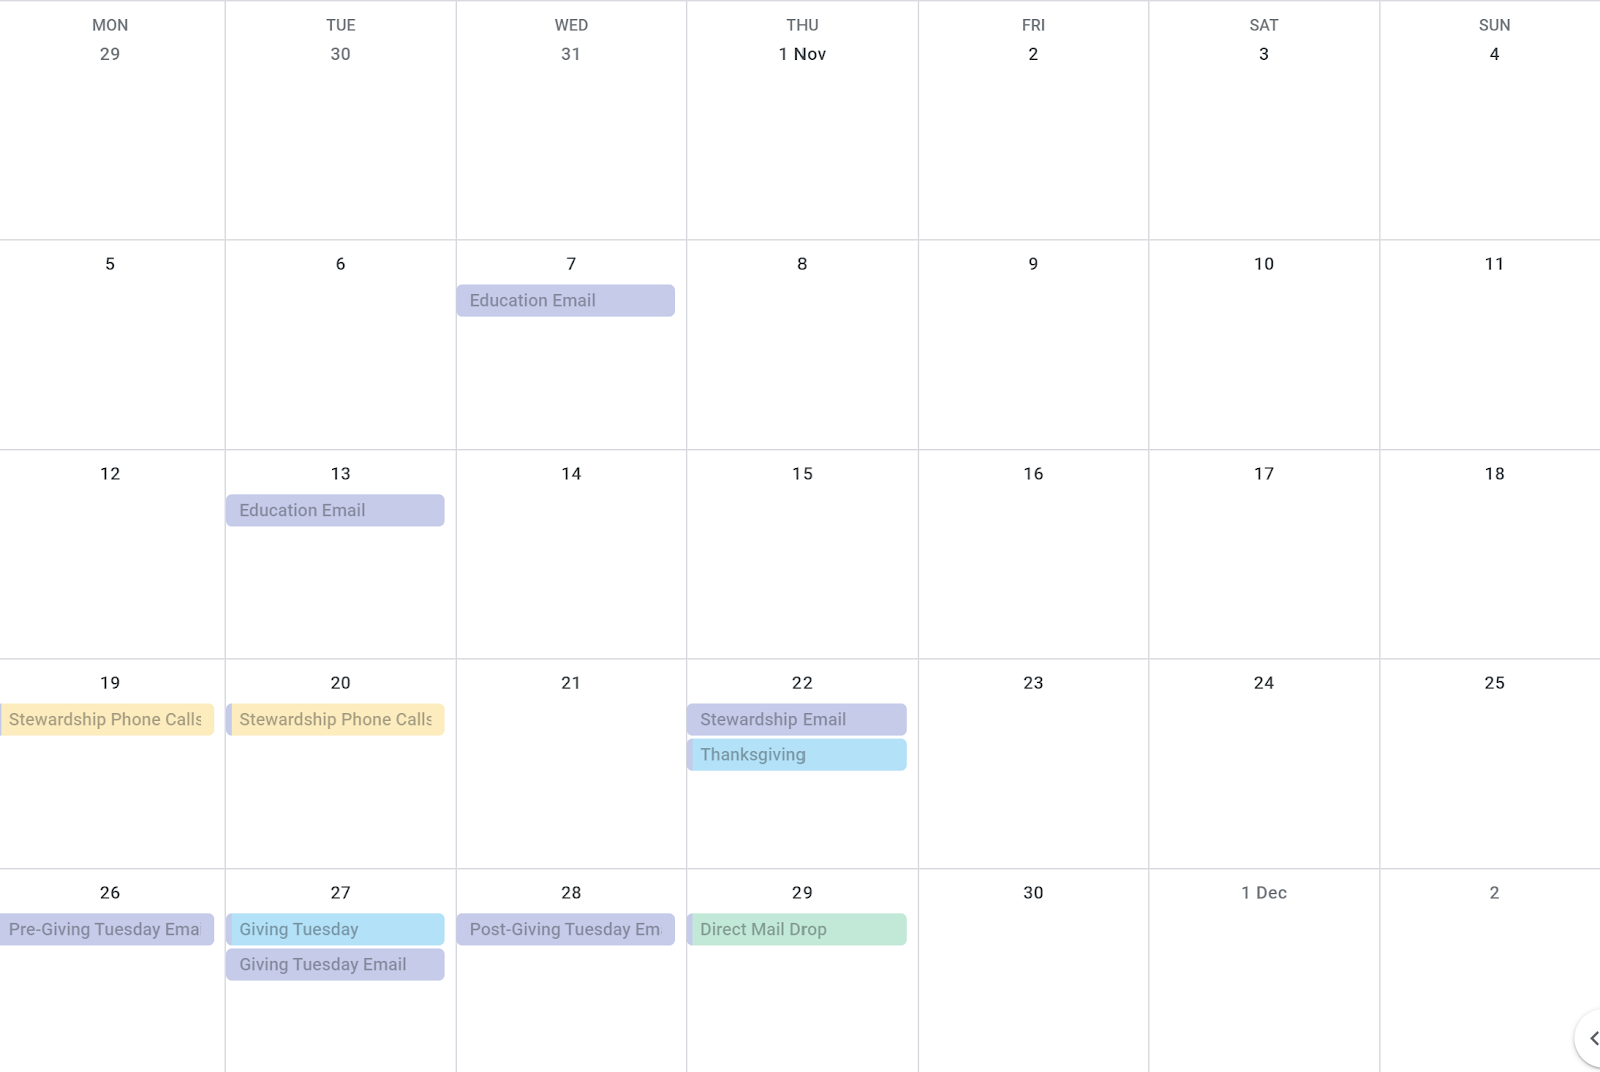 Image of a calendar with fundraising activities planned.